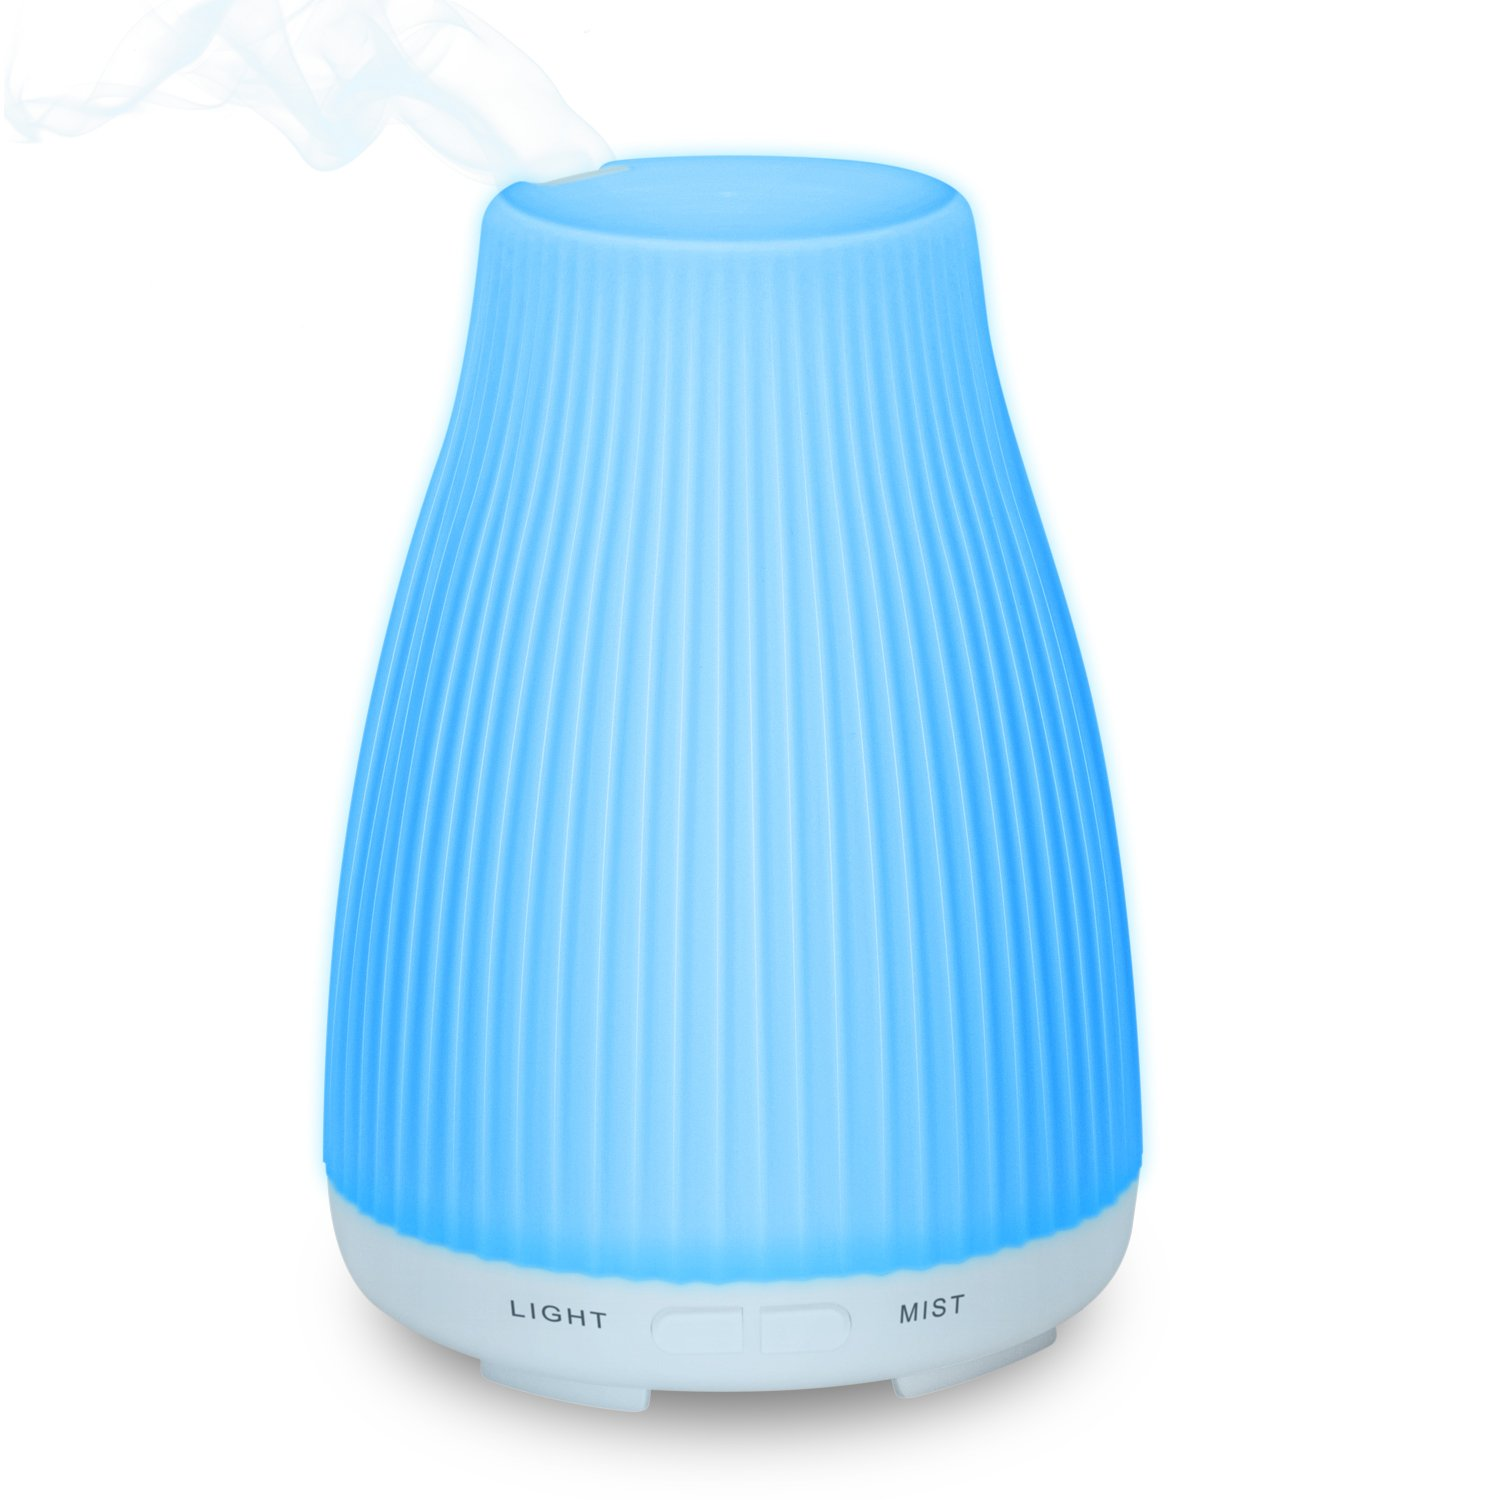 Neloodony 100ml Aromatherapy Essential Oil Diffuser with 8 Colors LED Lights Bpa Free Waterless Auto Shut-Off, (Upgraded Version)